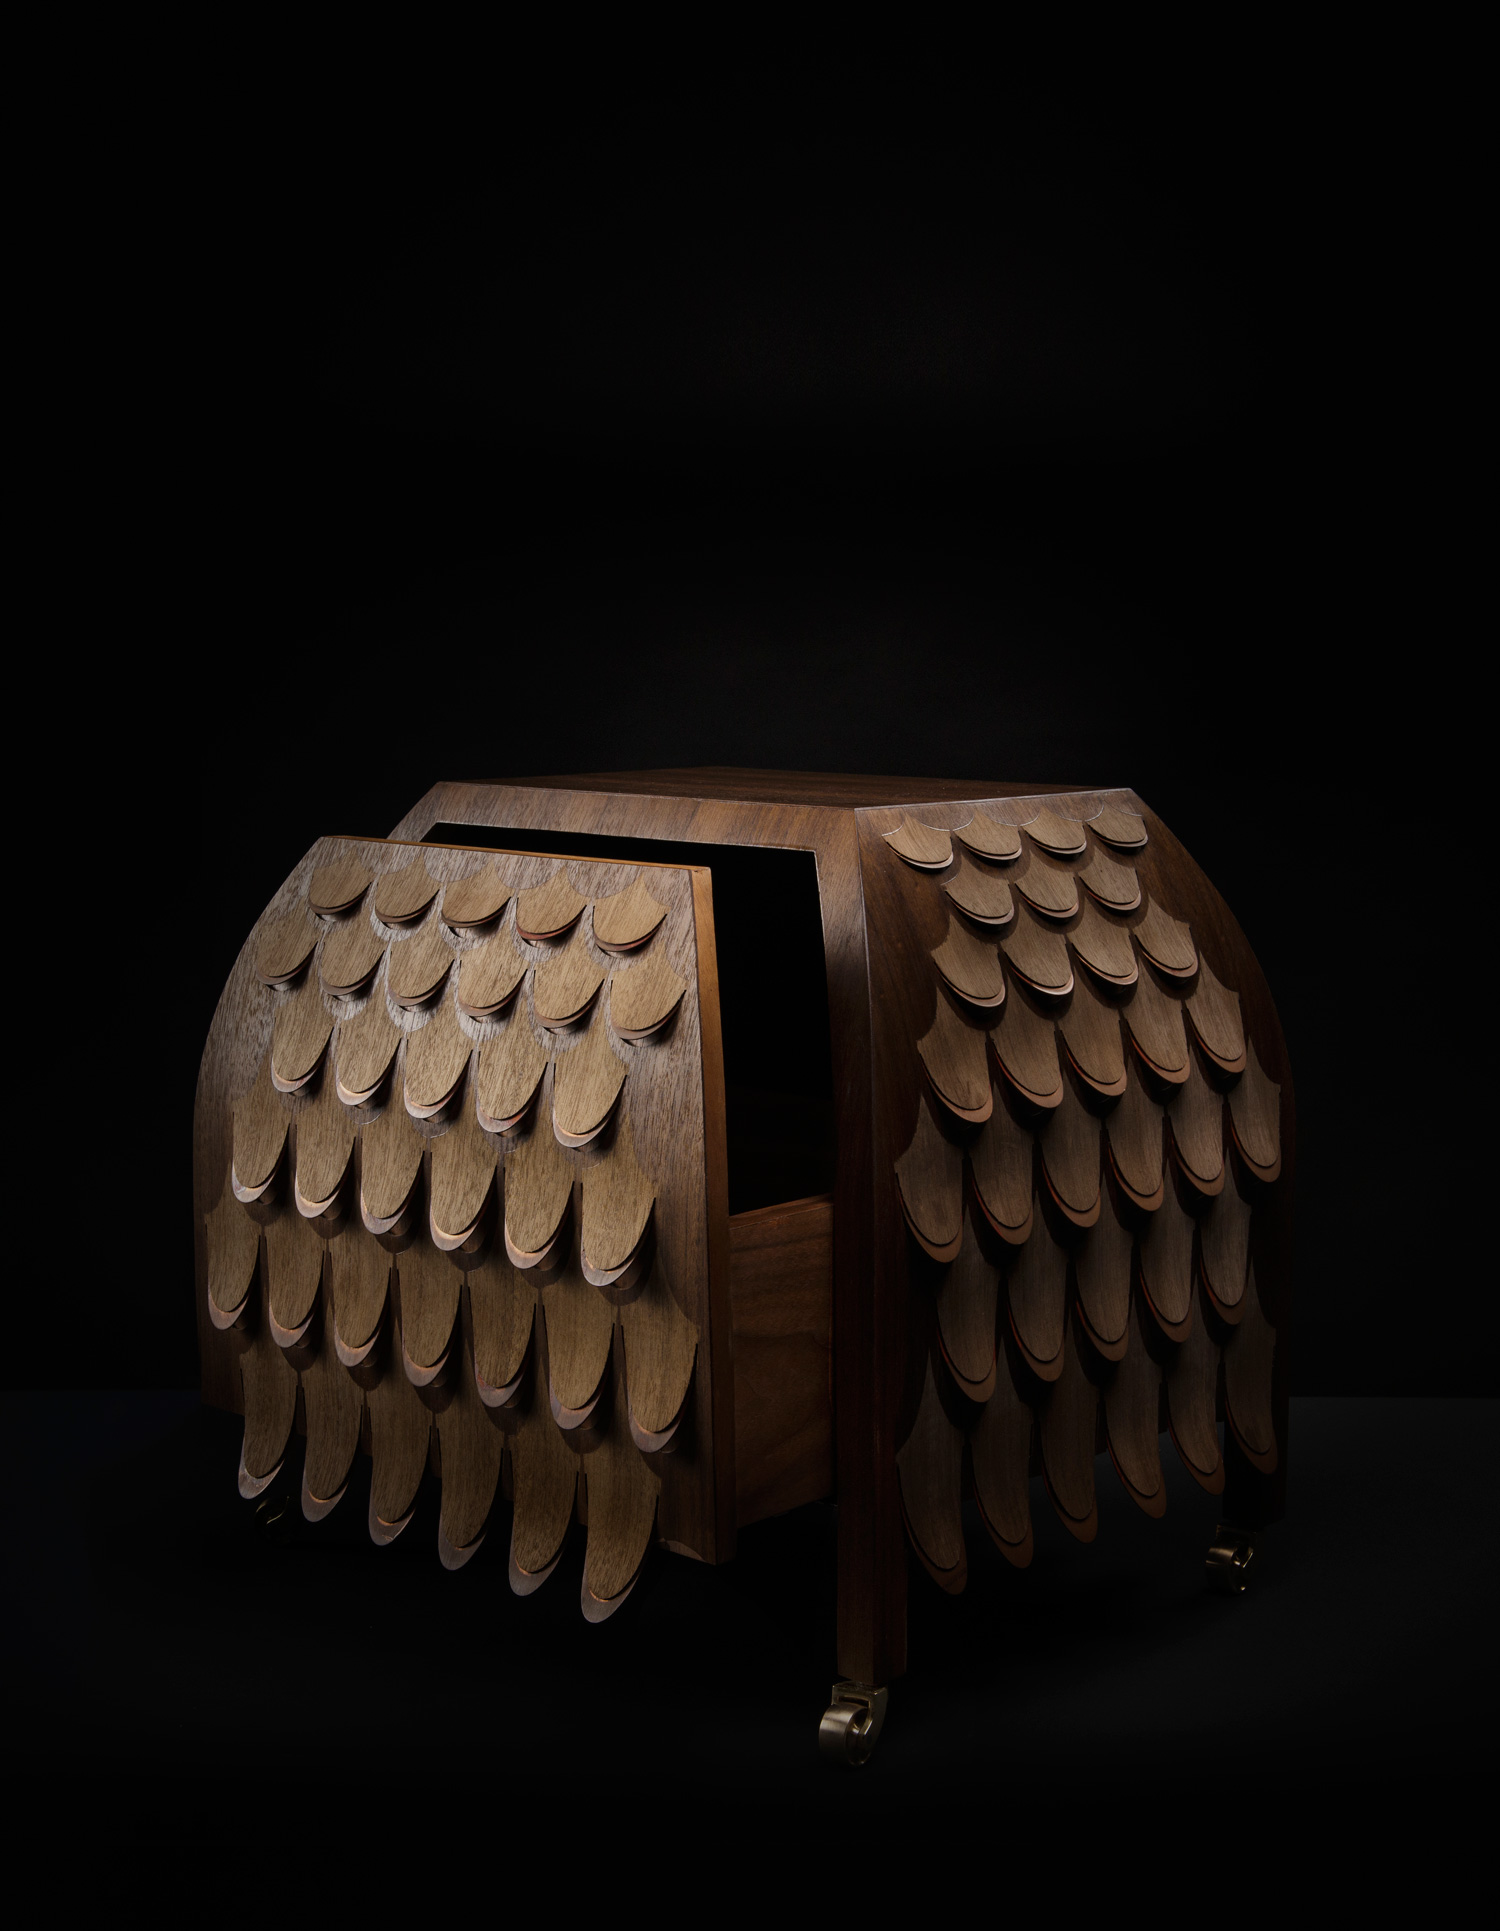 Pankalangu Side Table, Broached Monsters by Trent Jansen | Yellowtrace